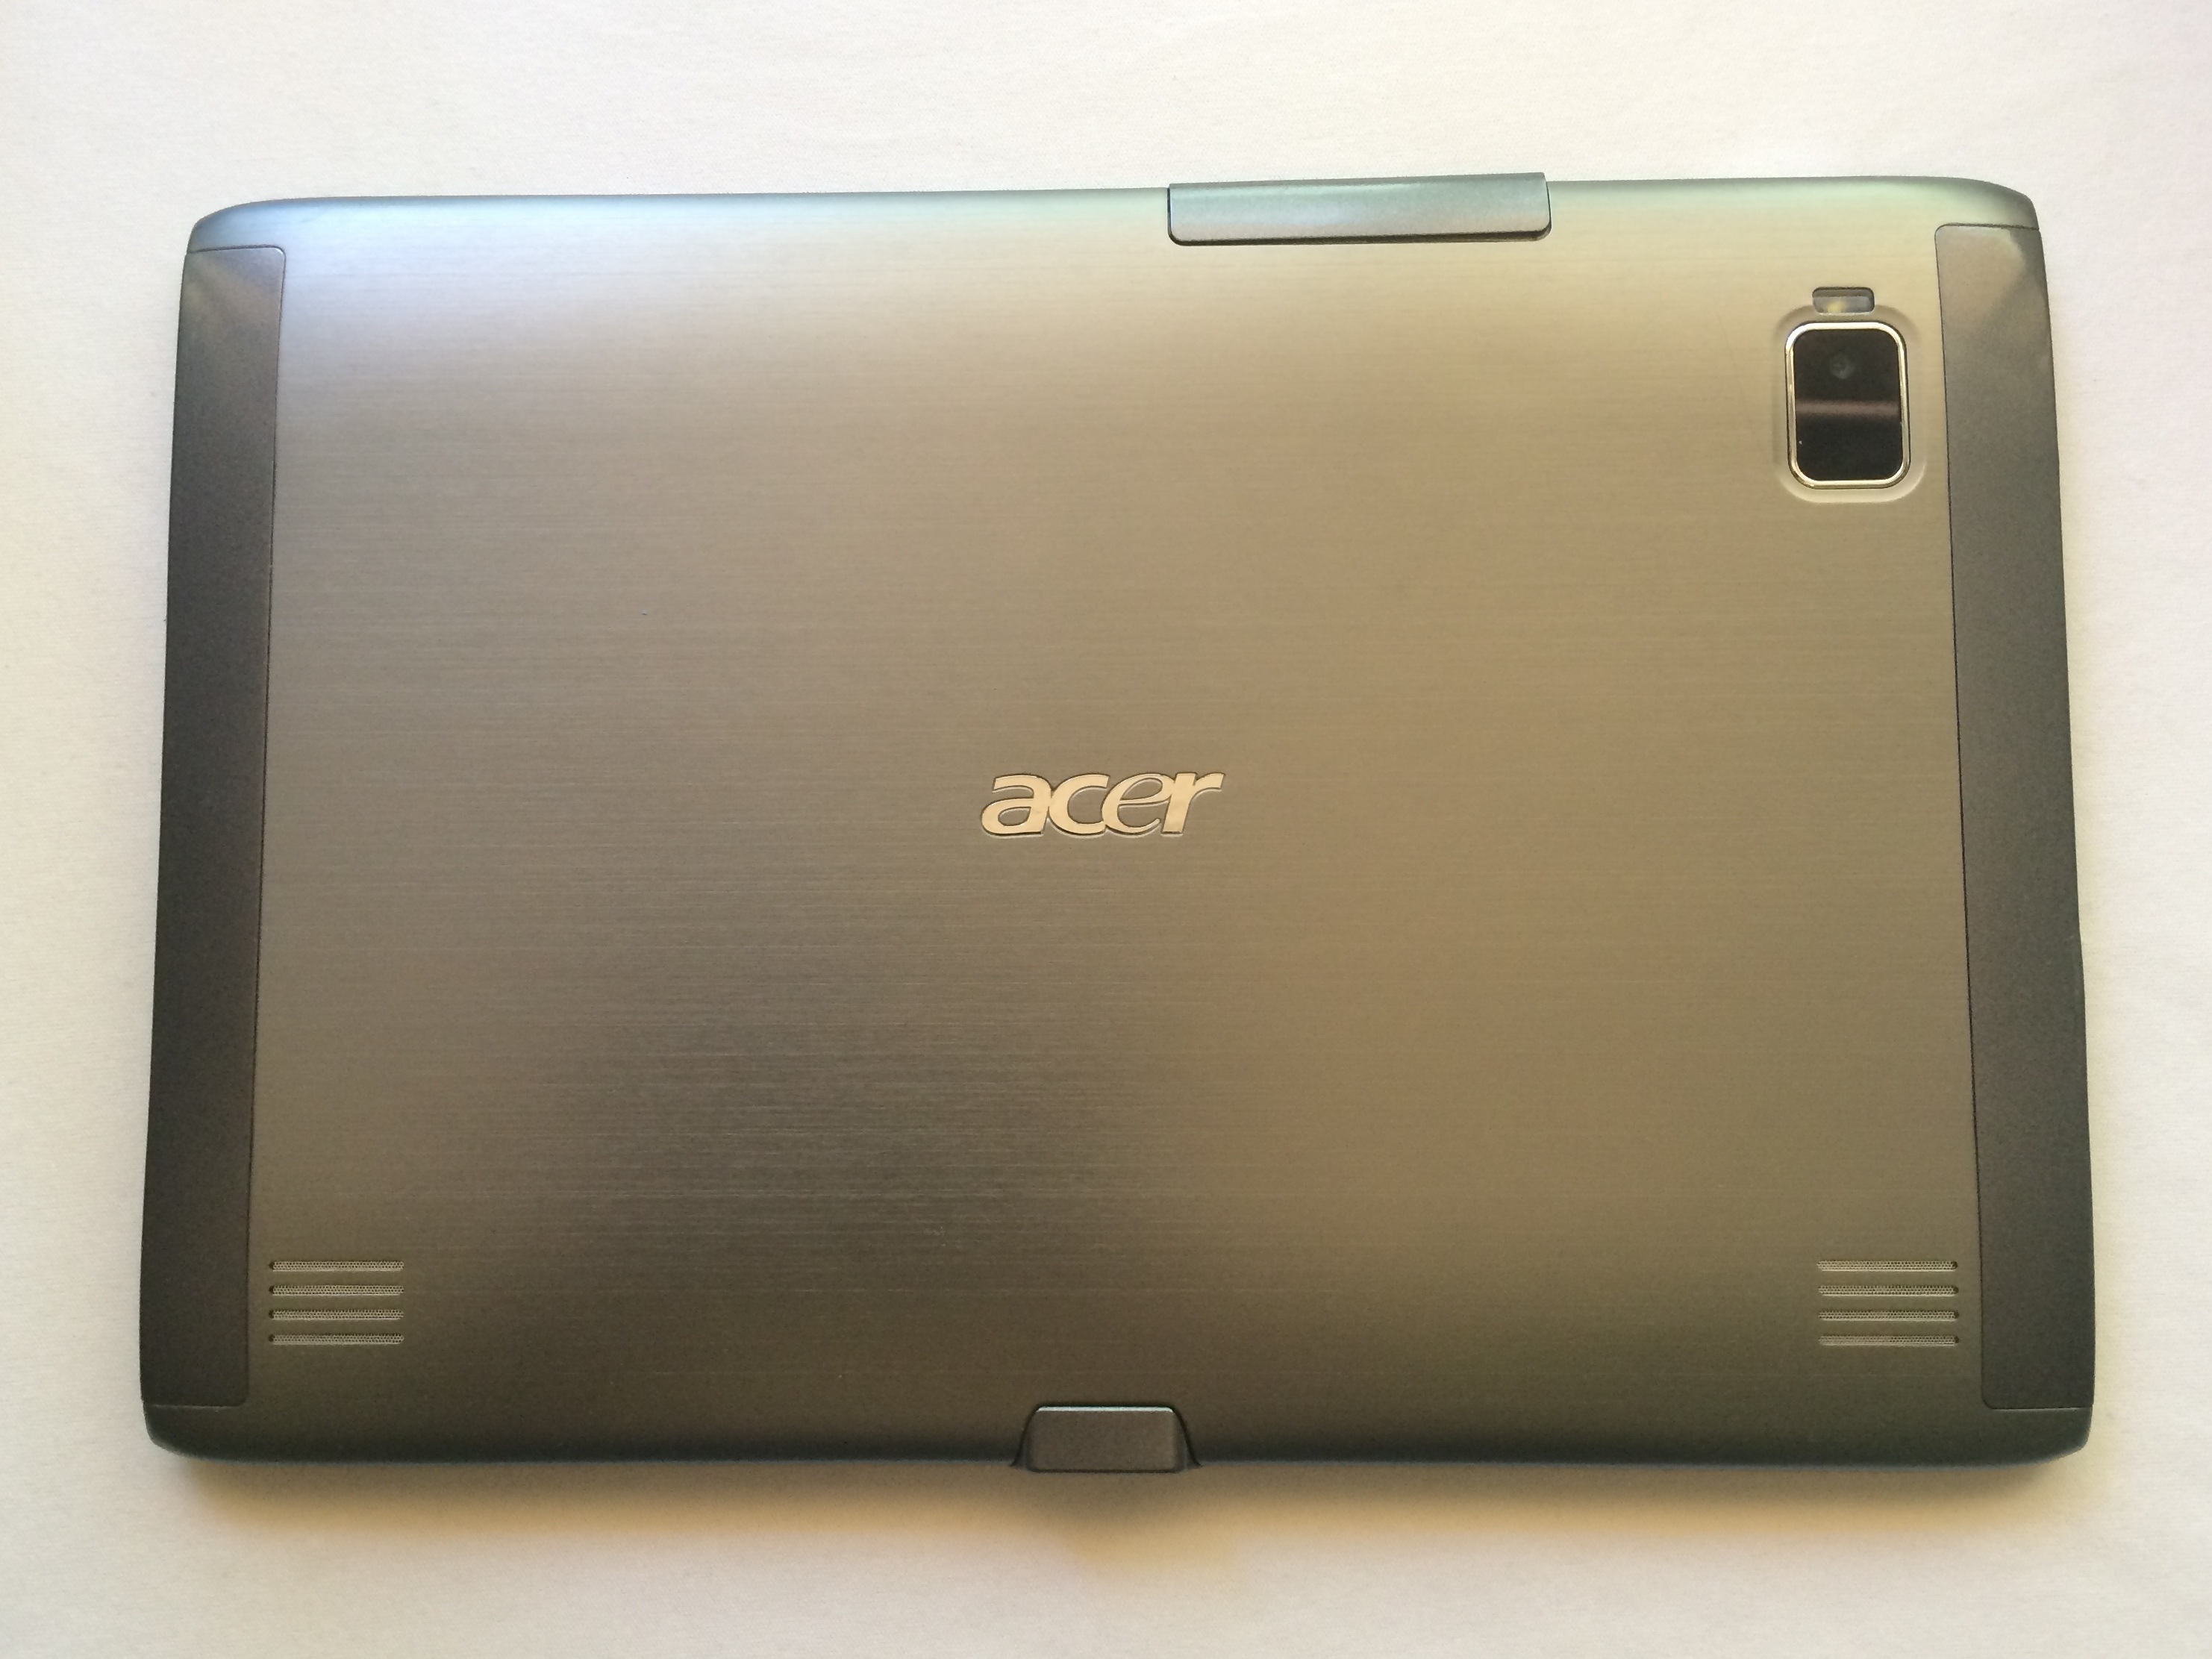 acer iconia tab a500 repair ifixit rh ifixit com acer iconia tab a500 manuel d'utilisation acer iconia tab a500 user manual download